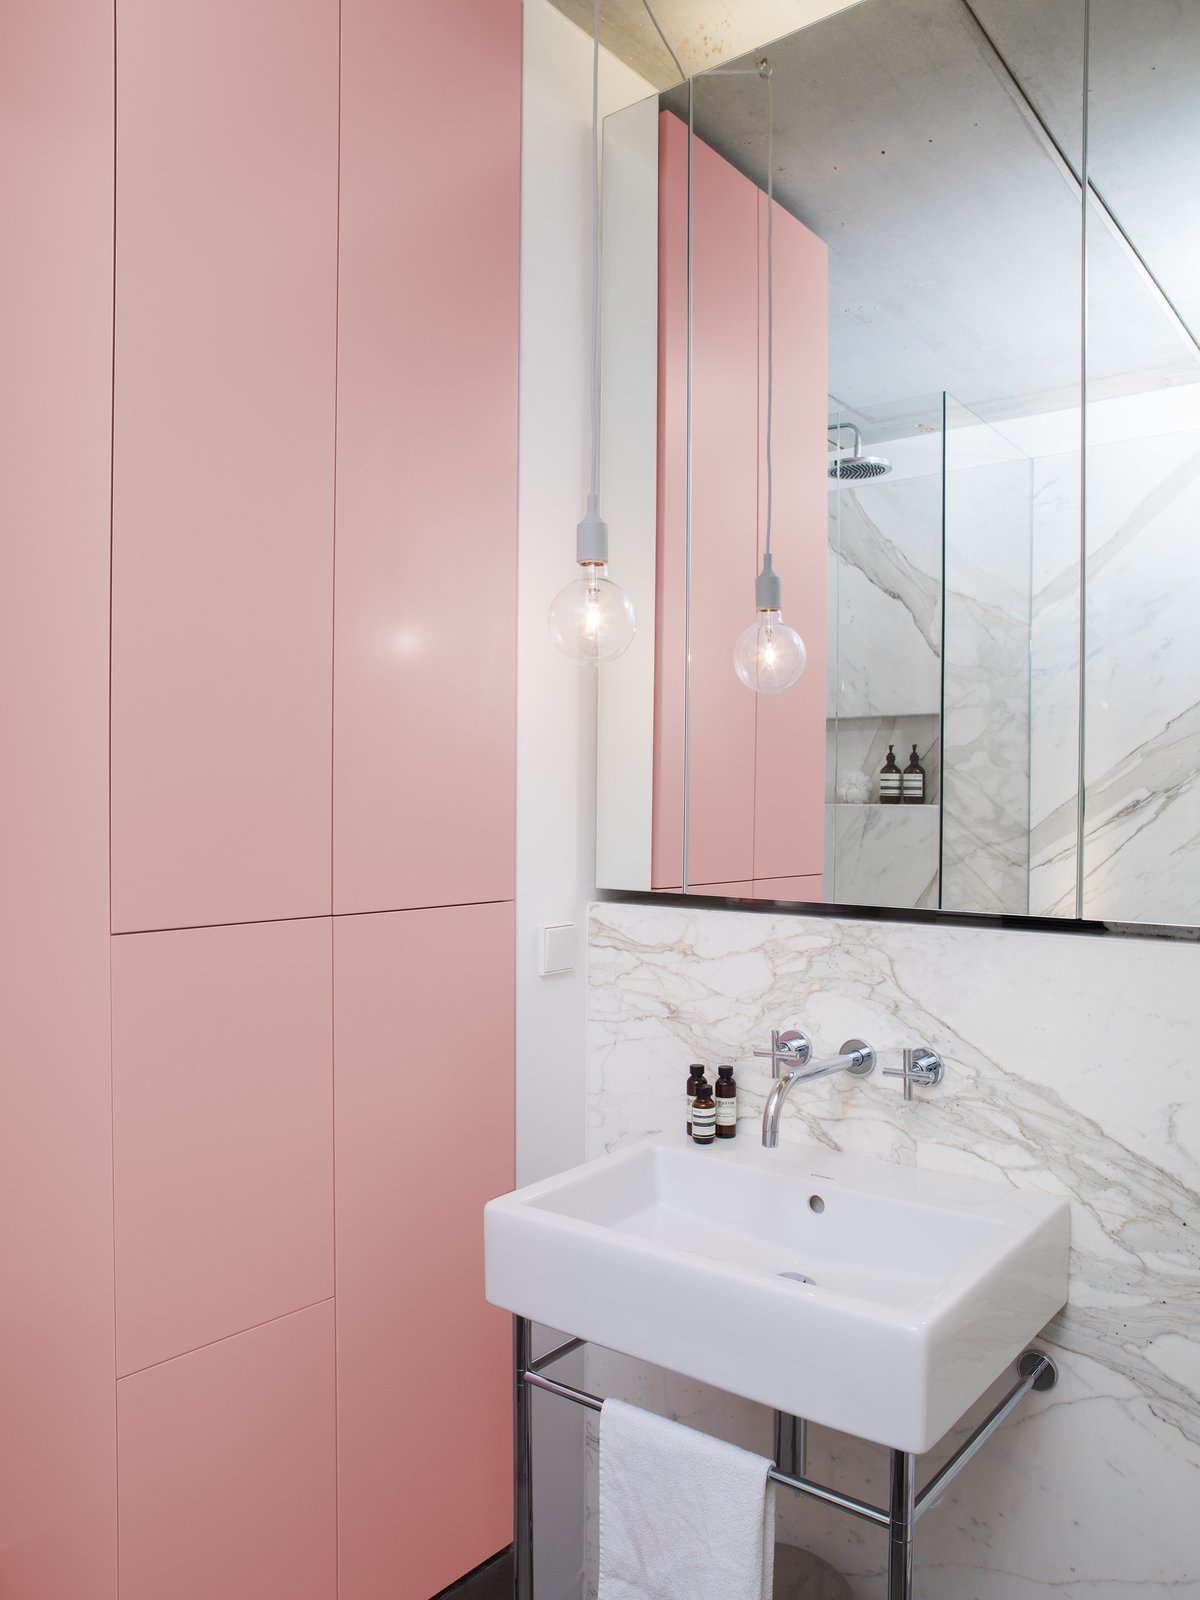 Bath Room, Pendant Lighting, Marble Wall, and Wall Mount Sink Smooth, handleless joinery are a classical, but nonetheless creative way to make storage systems beautifully discreet with ample room for storage.  Photos from 8 Bathroom Storage Hacks You Probably Haven't Tried Yet